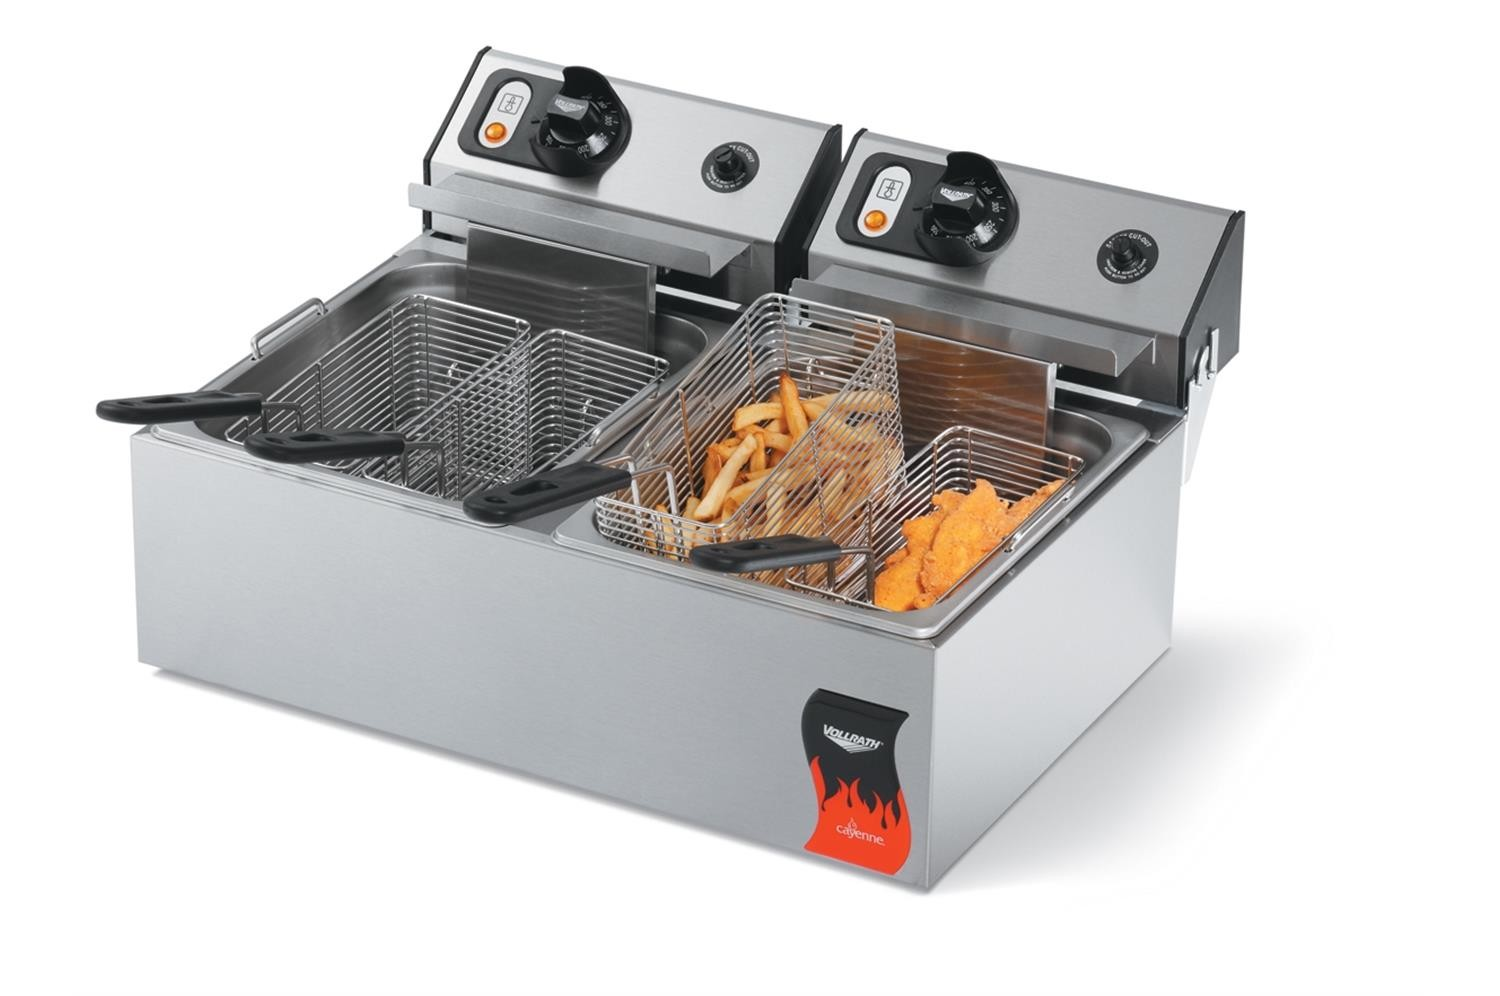 Vollrath 40707 Countertop Electric Fryer With 1.8 kw 110 V